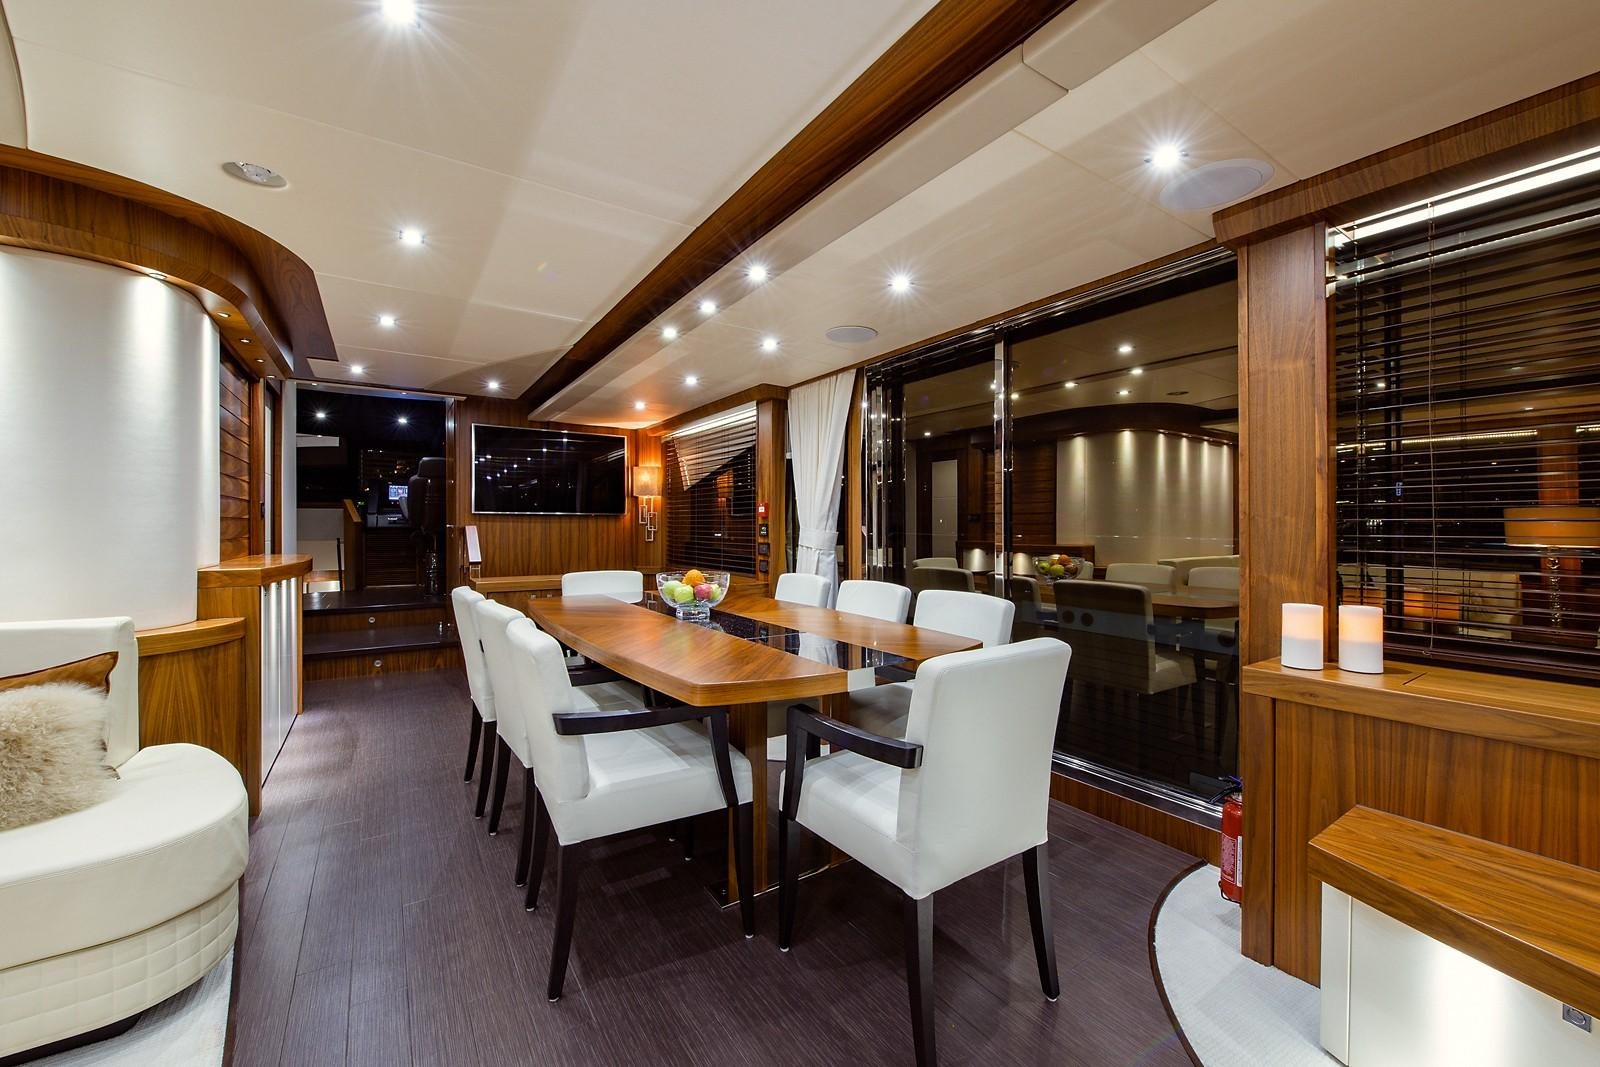 2016 Sunseeker 28 Metre - Dining